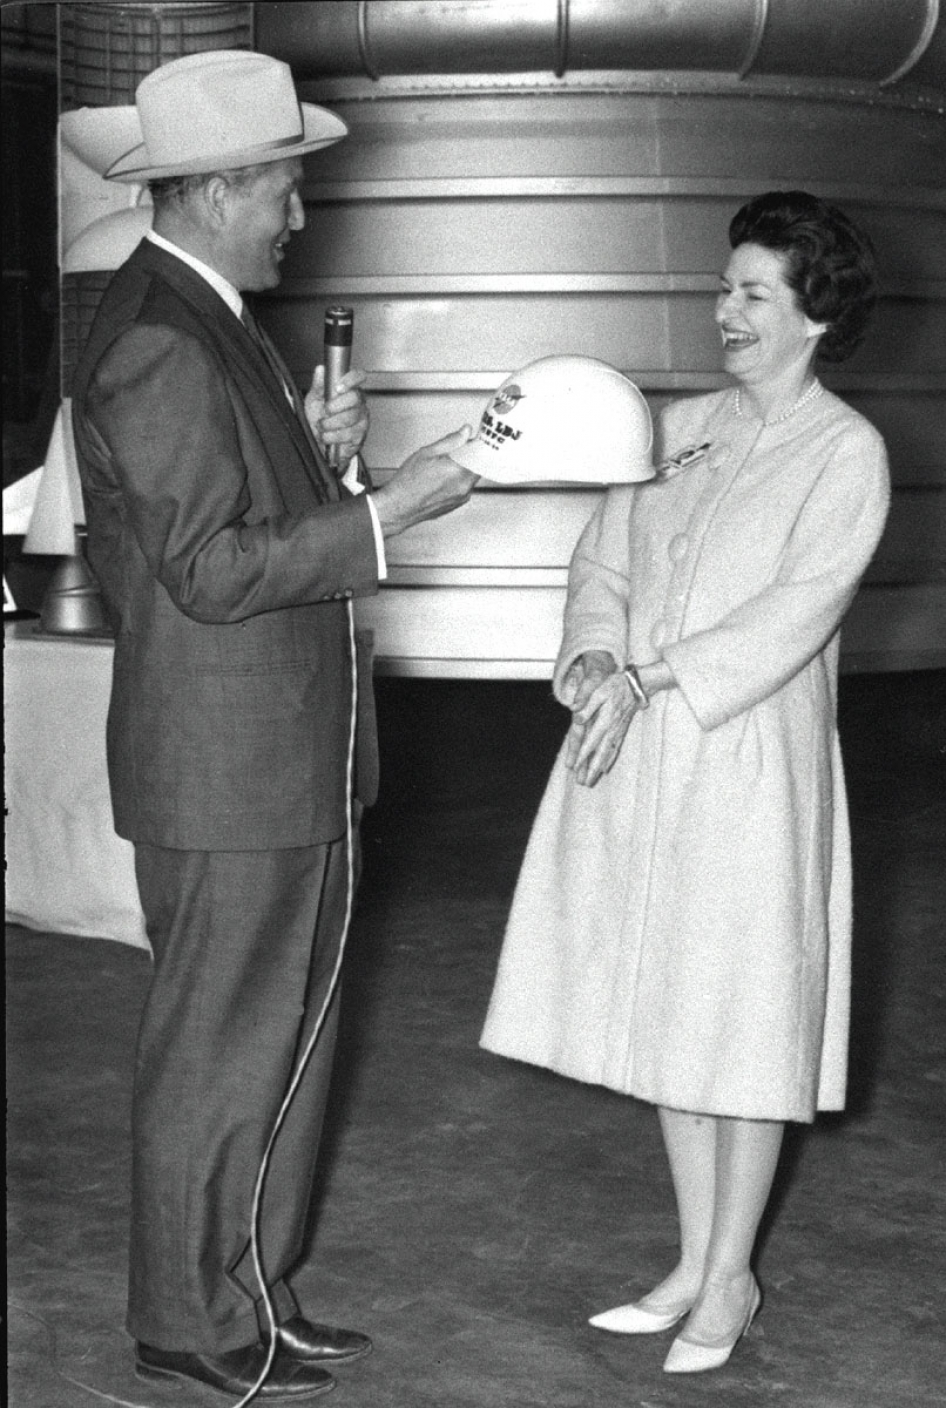 Dr. von Braun and Lady Bird Johnson